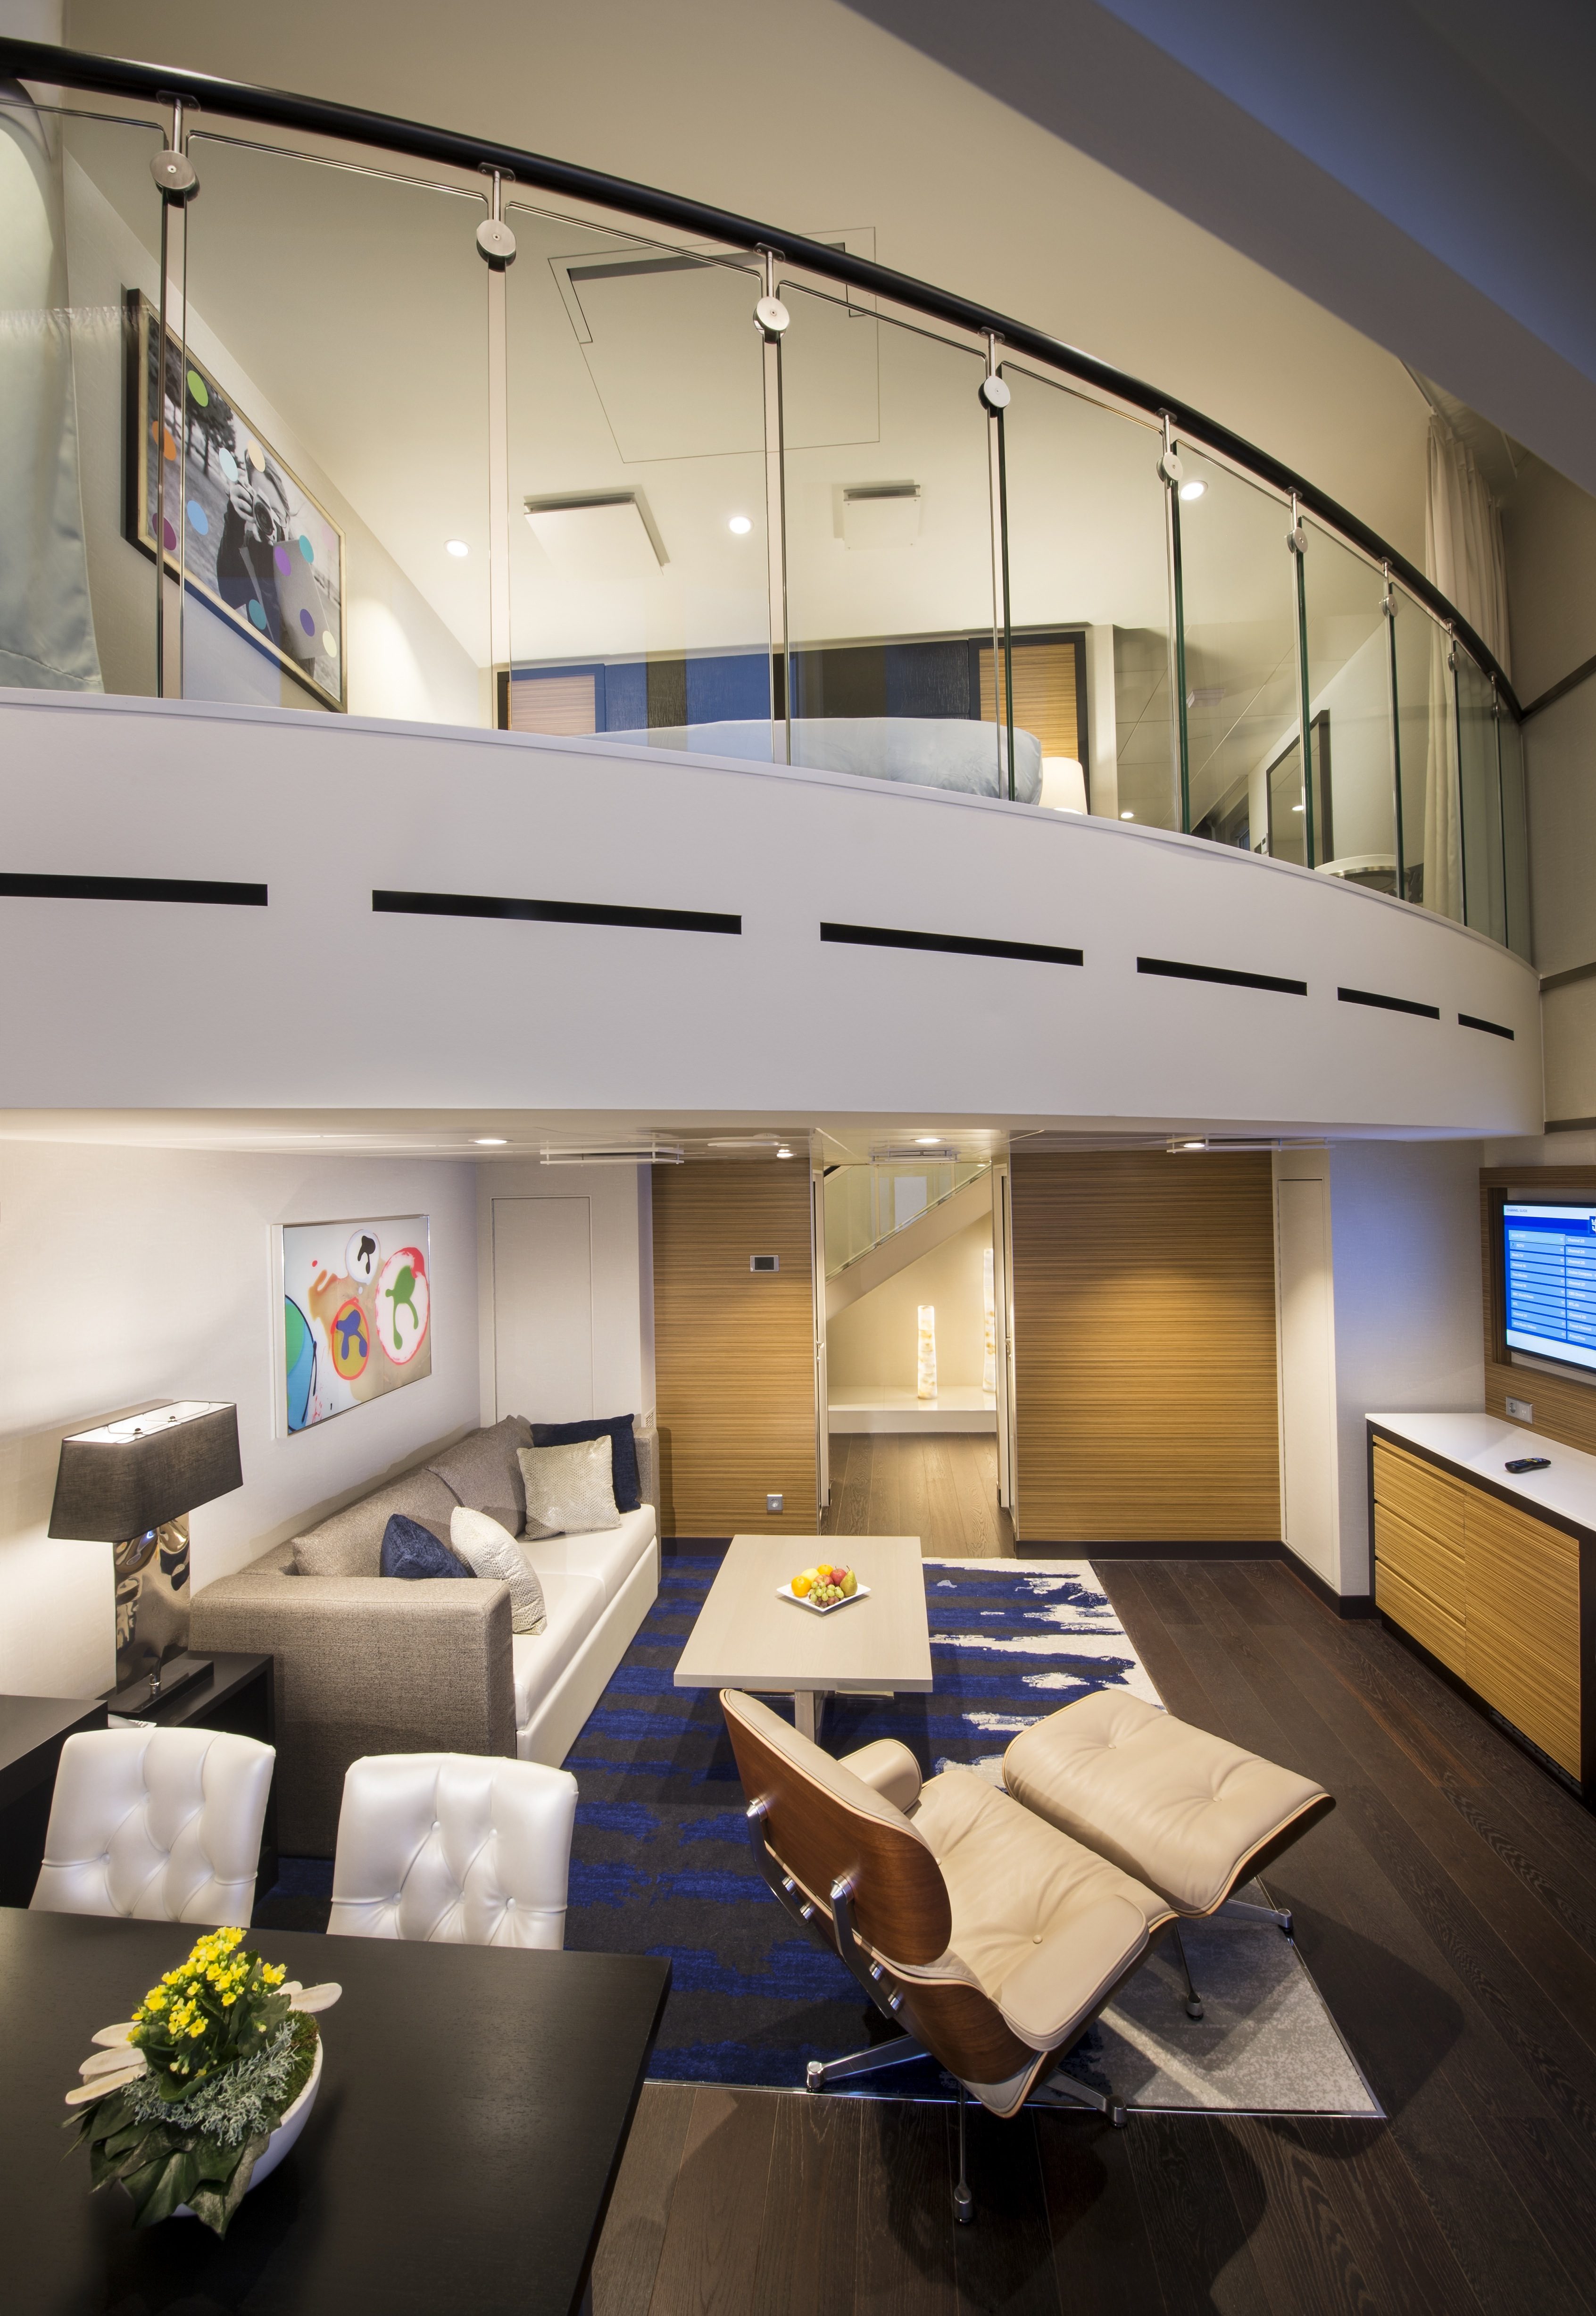 Royal Caribbean International Quantum of the Seas Accommodation Grand Loft F.jpg